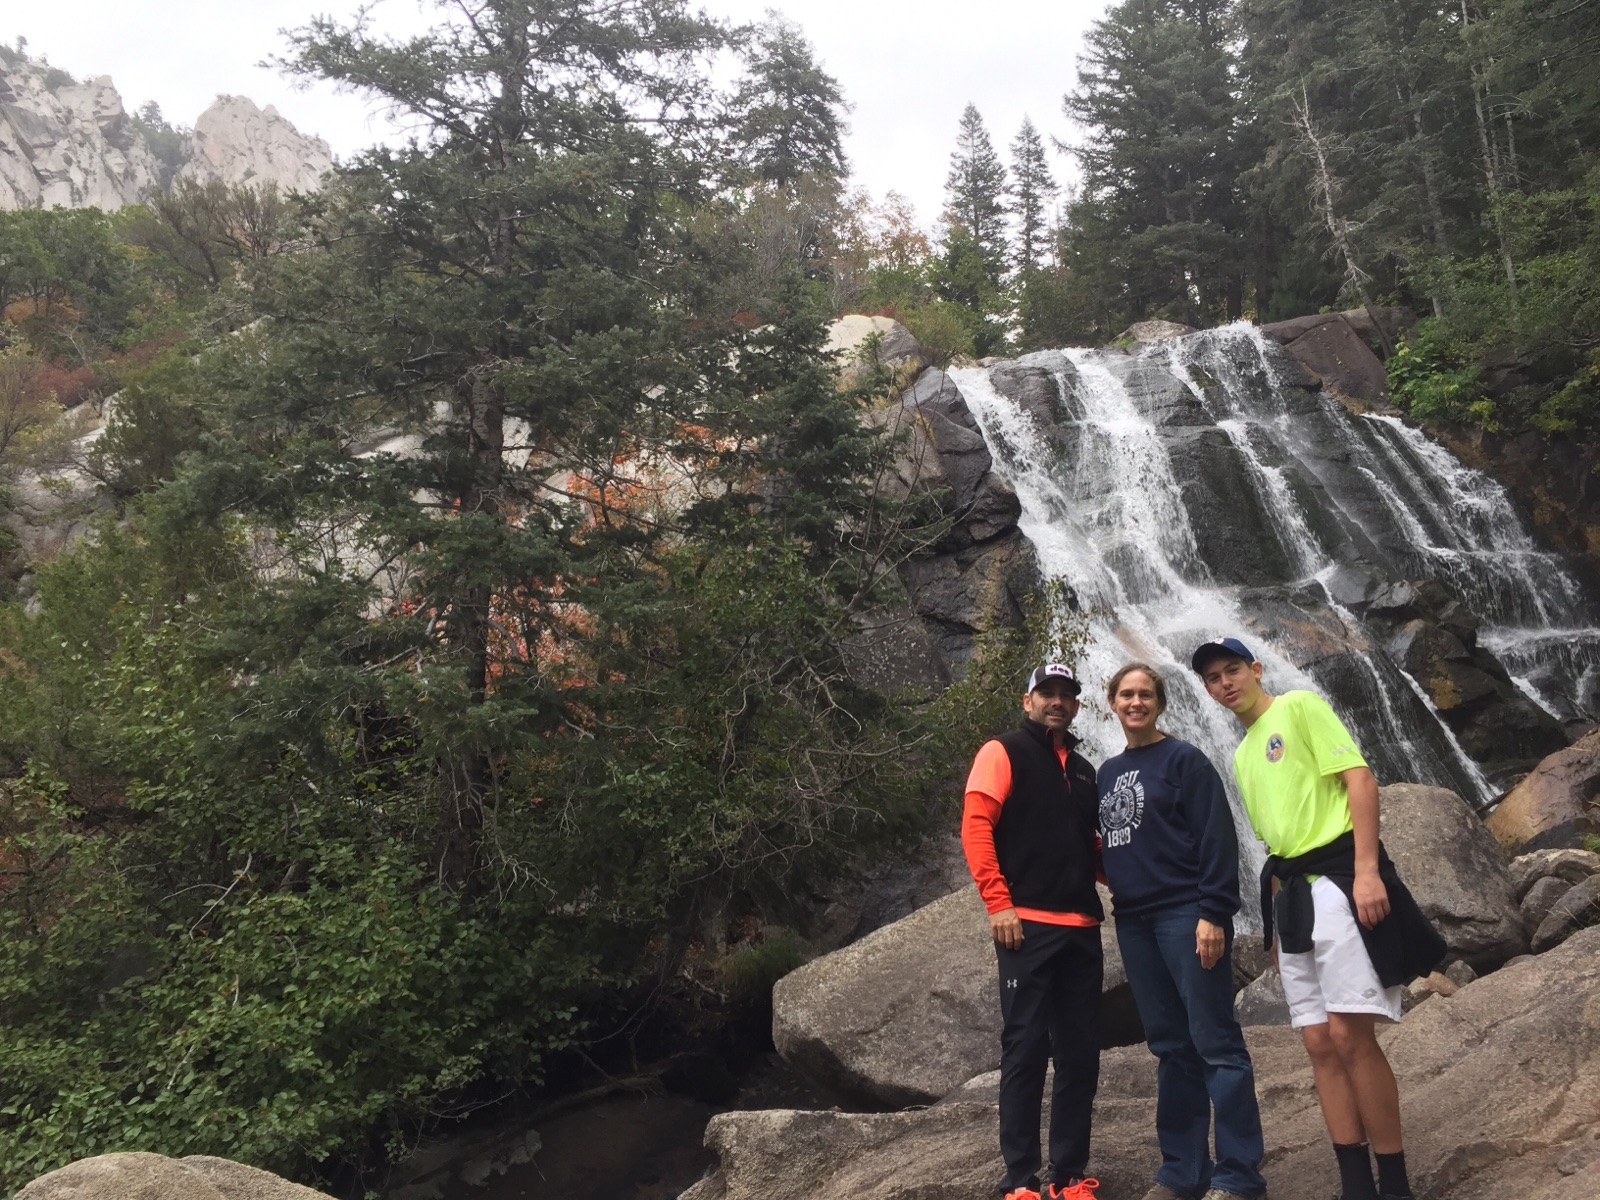 Murdocks using their fitness up Bell's Canyon, lower falls! Spectacular!